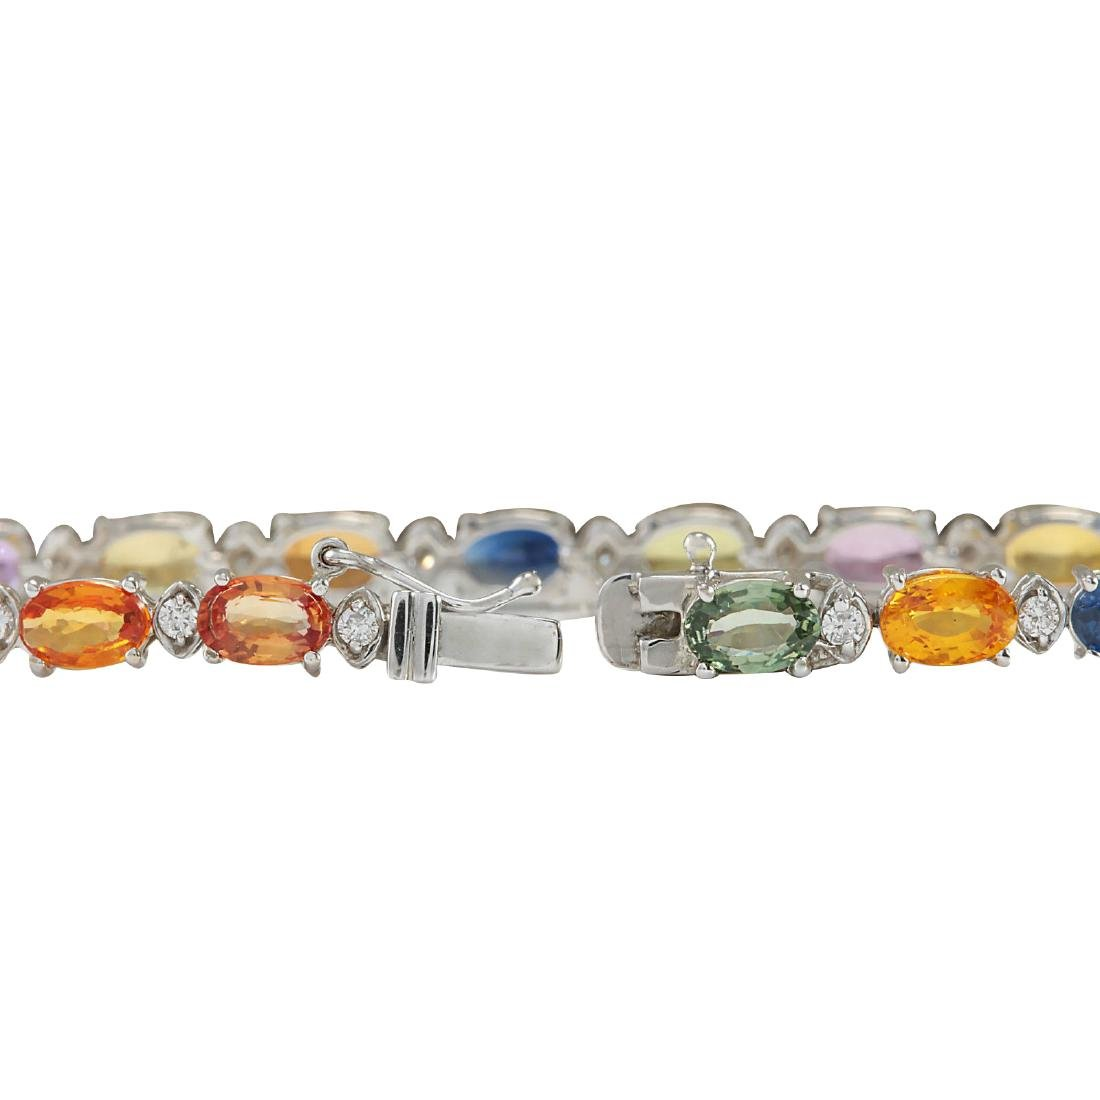 13.35CTW Natural Sapphire And Diamond Bracelet In 18K - 3